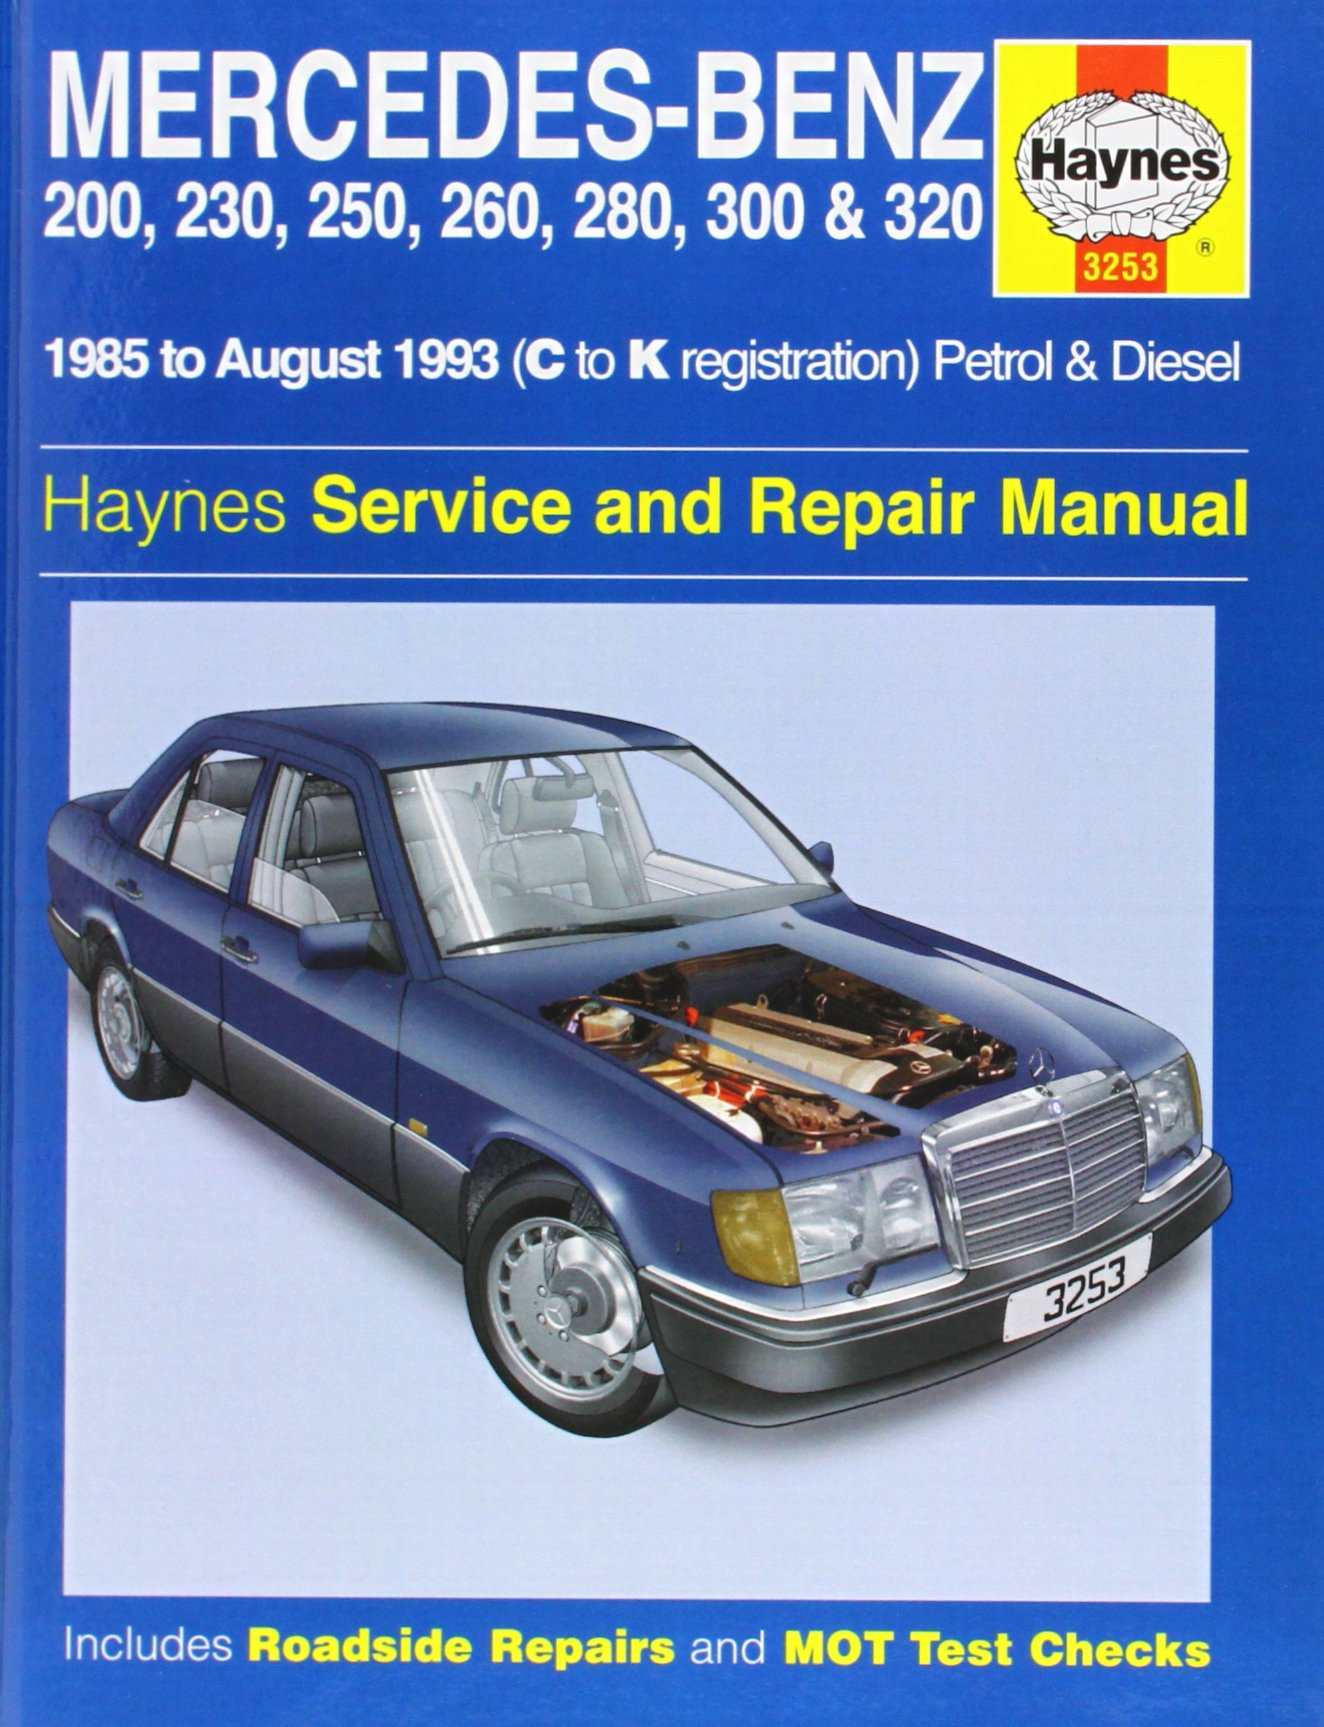 mercedes benz 124 series 85 93 service and repair manual haynes rh amazon  com Mercedes E200 2016 Mercedes E200 Coupe